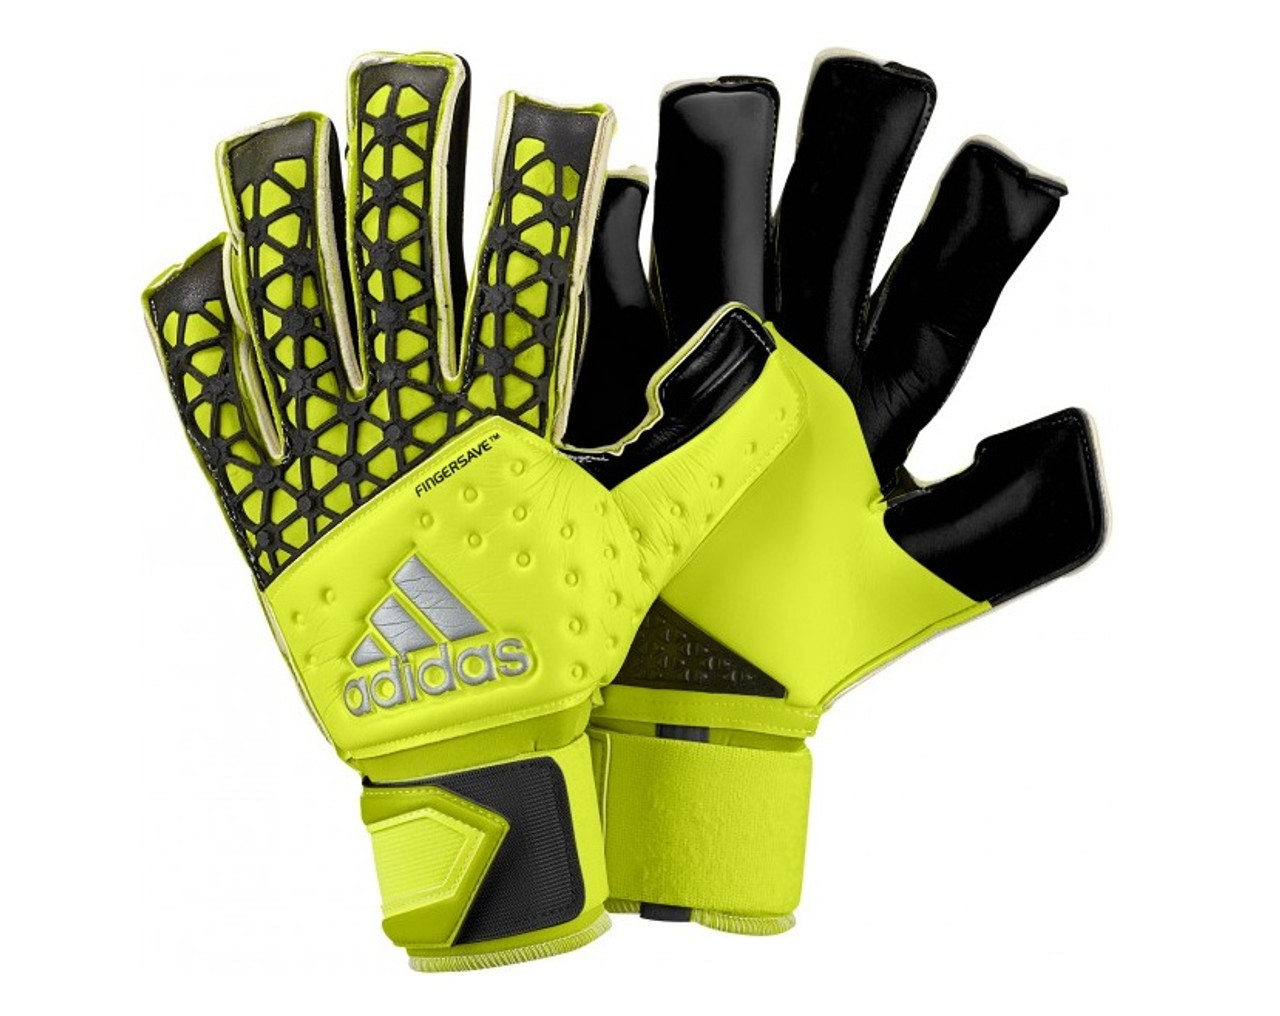 157b4b99 adidas Ace Zones Allround Fingersave Gloves - Solar Yellow/Black